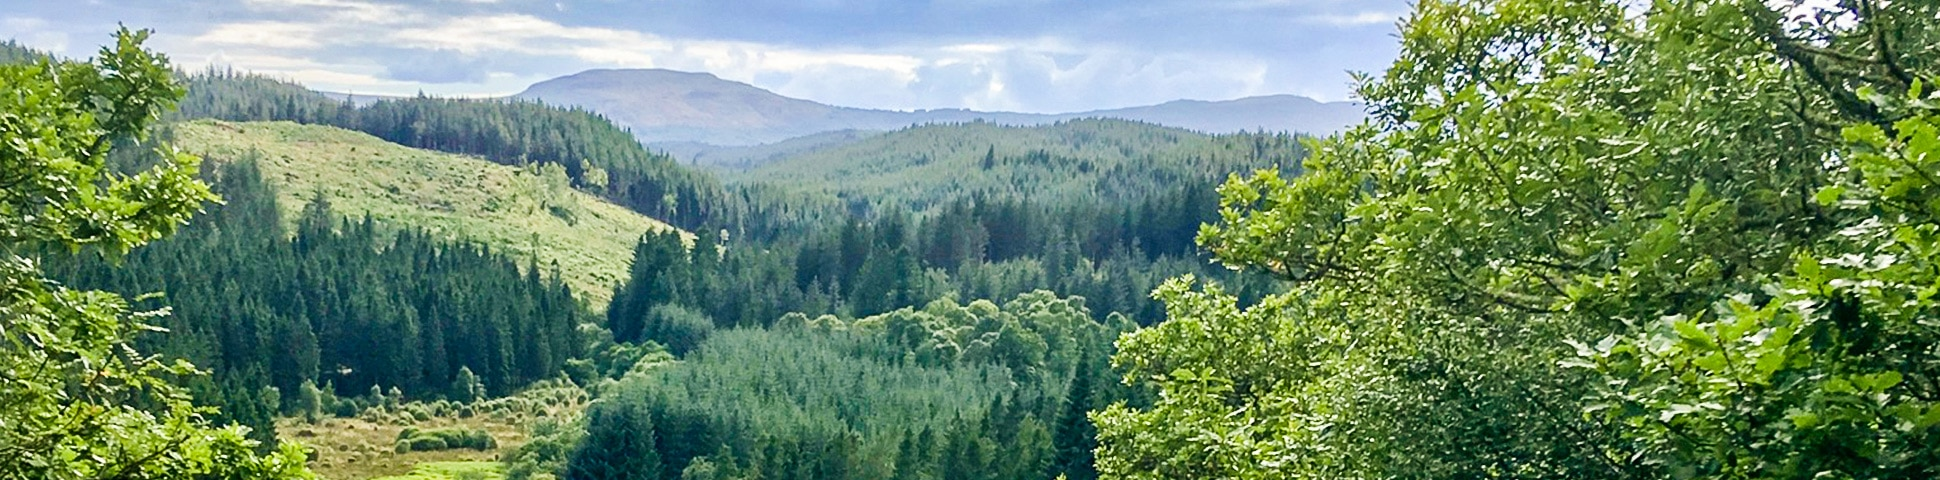 Panorama on Doon Hill Fairy Trail hike in Loch Lomond and The Trossachs area in Scotland